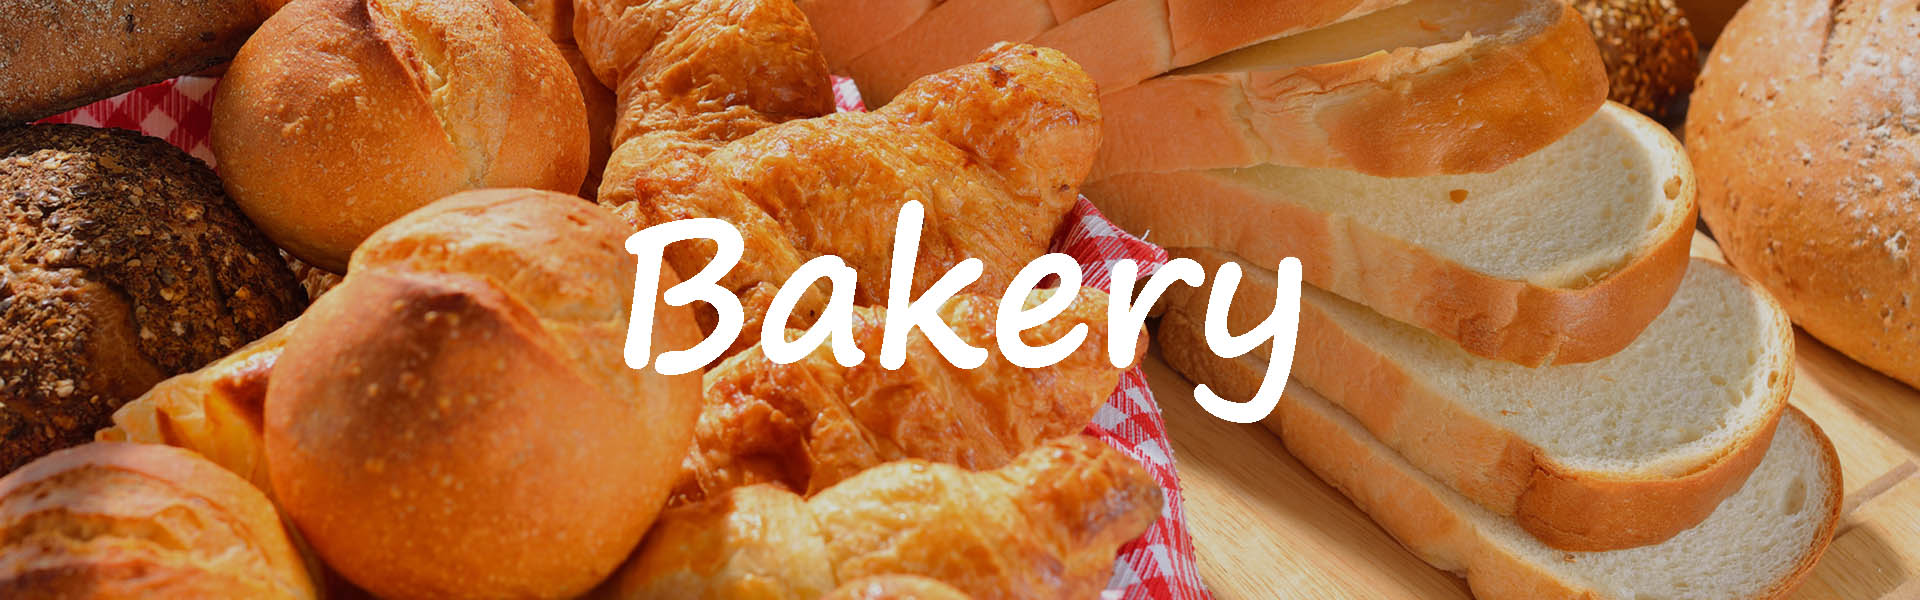 web-ready-bakery-1